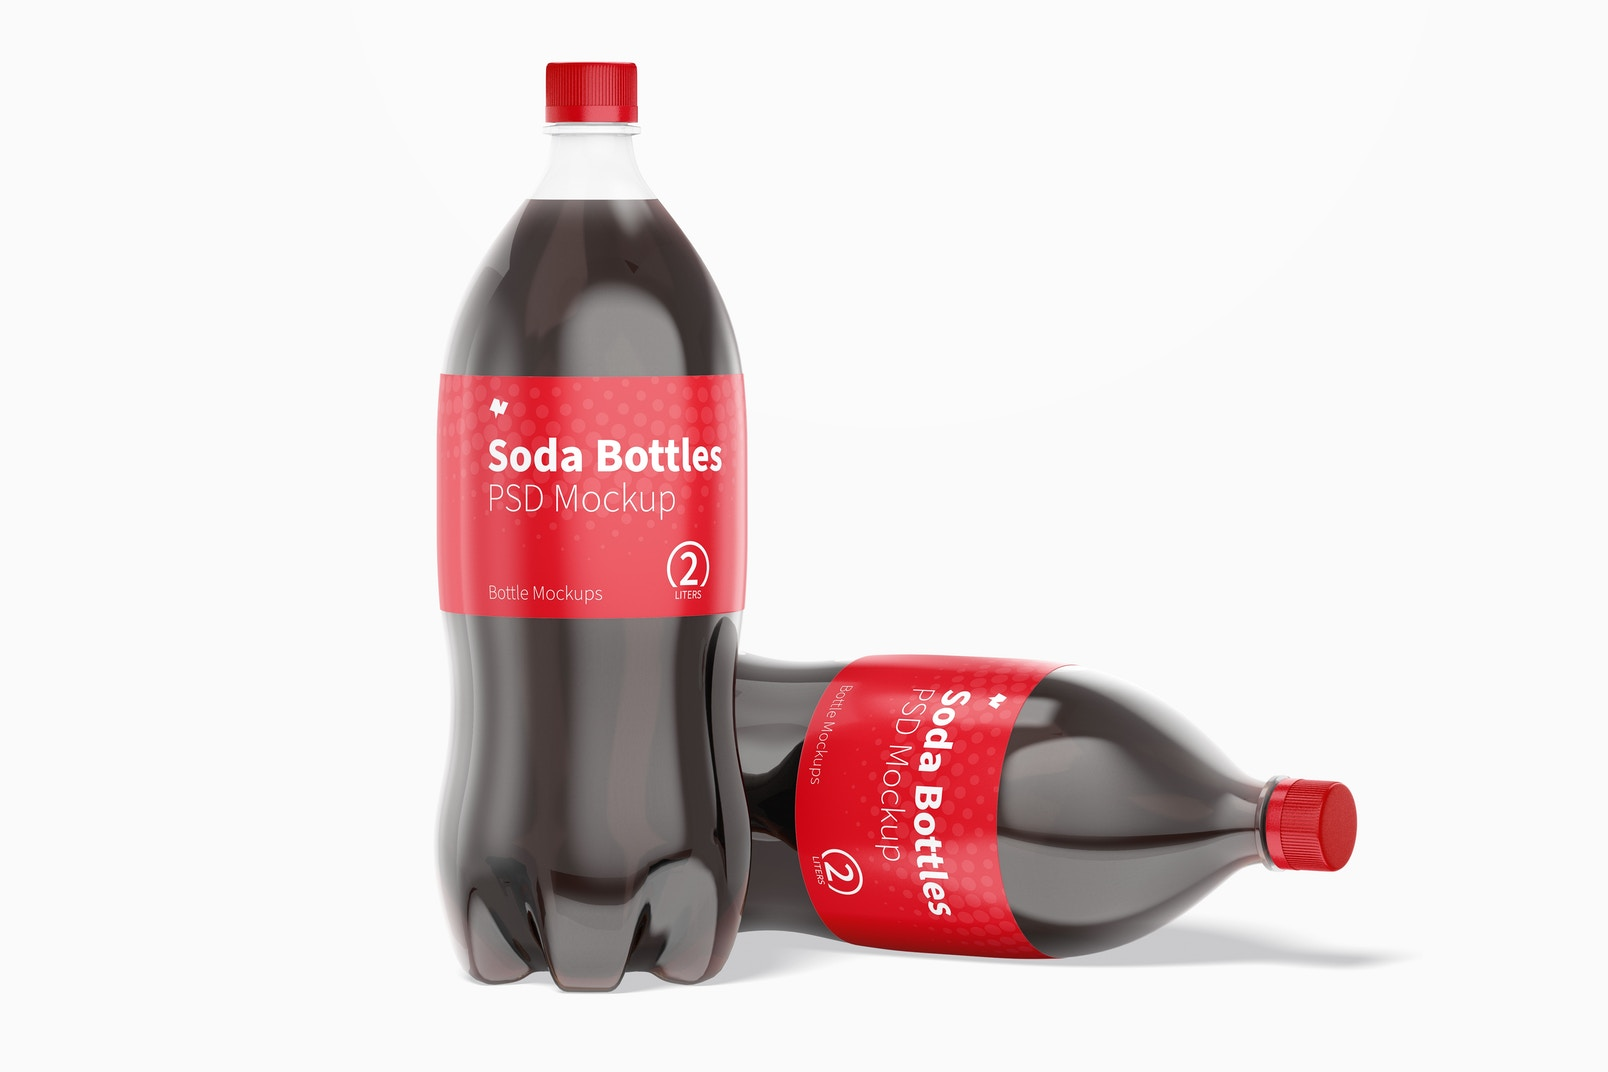 2L Coke Bottles Mockup, Standing and Dropped